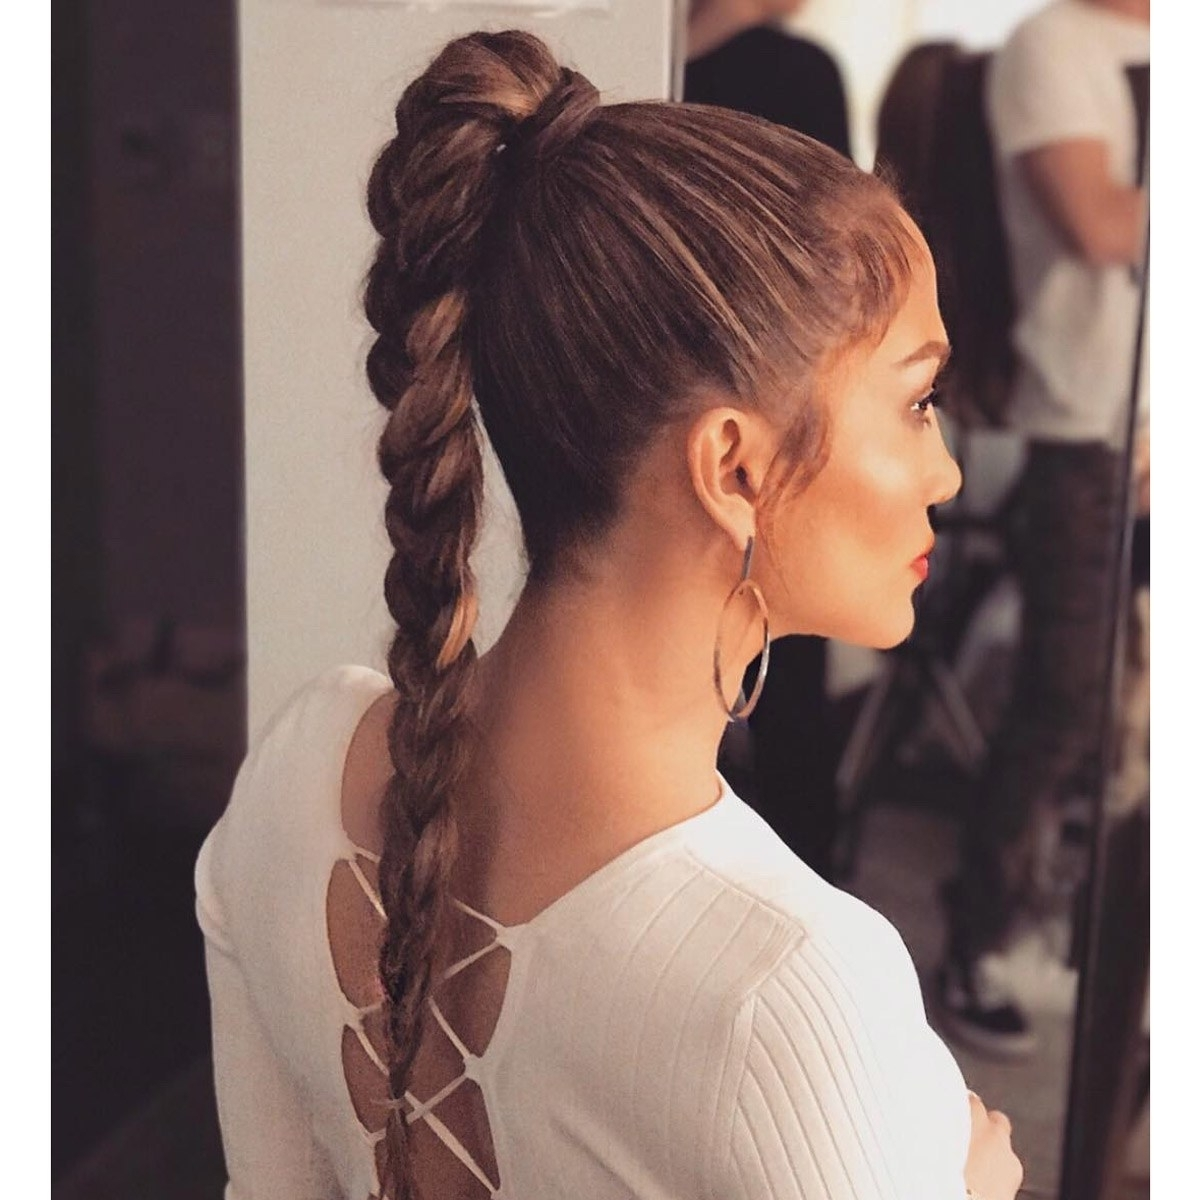 27 Ponytail Hairstyles For 2018: Best Ponytail Styles (View 13 of 20)